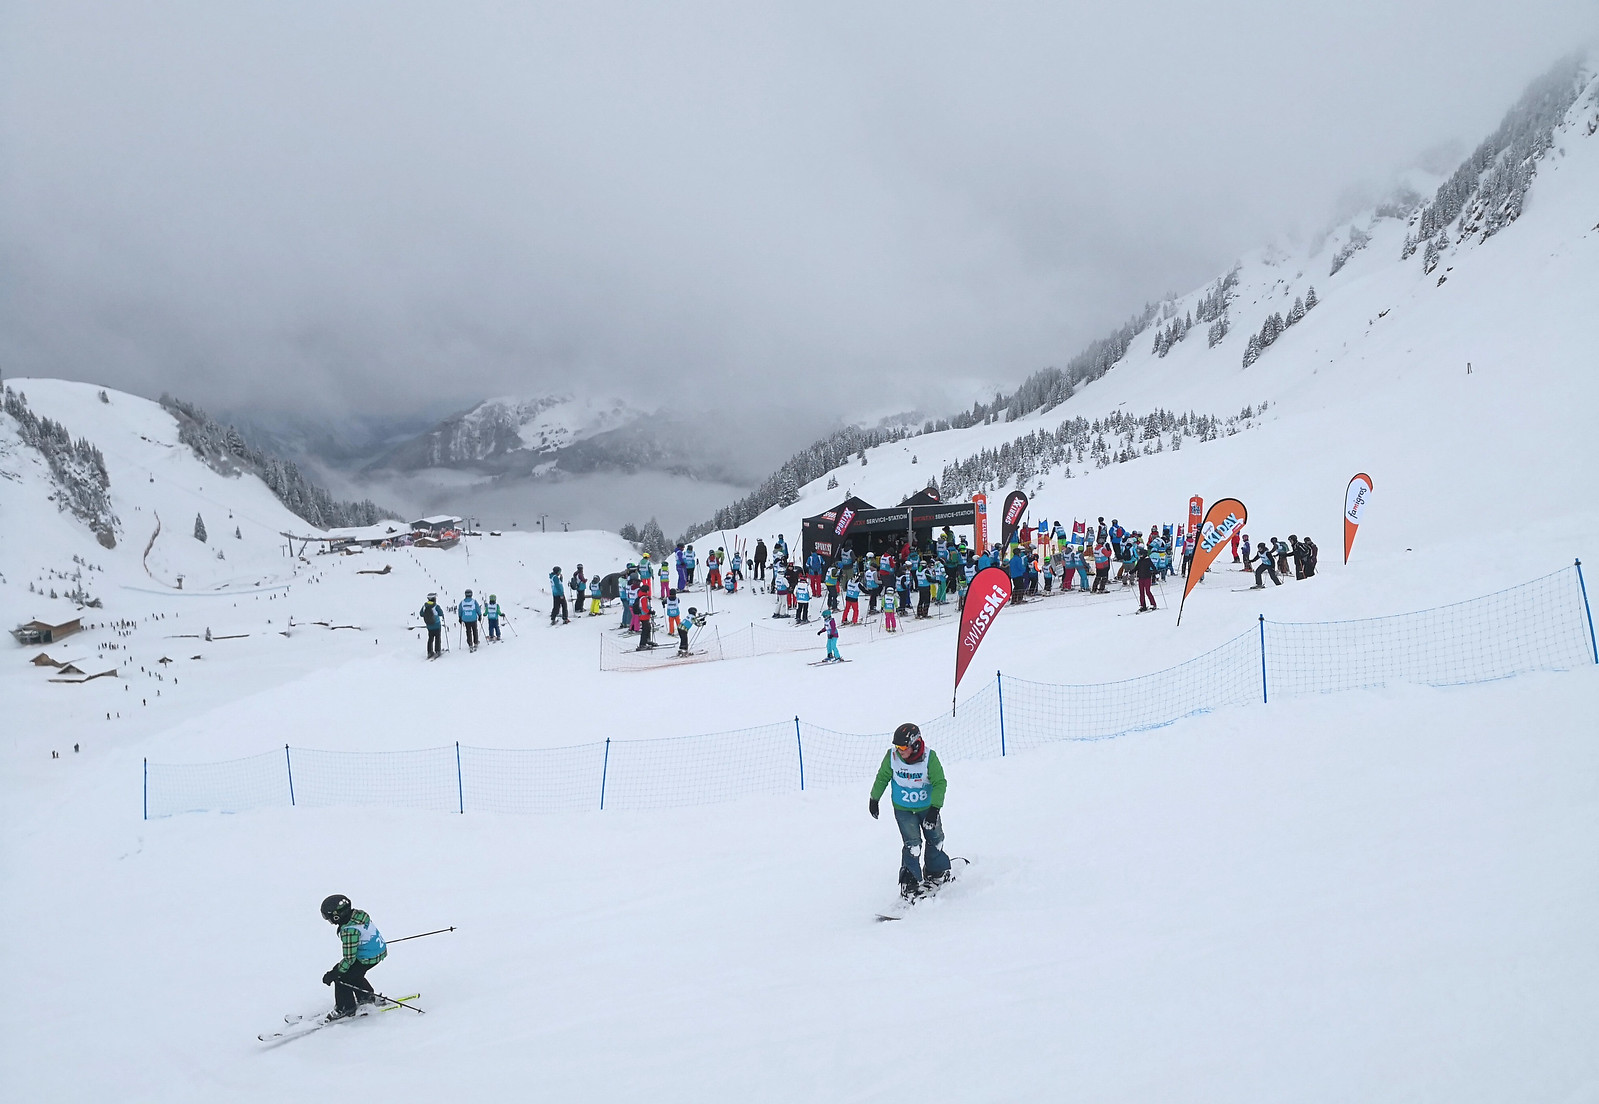 Queue for the ski race